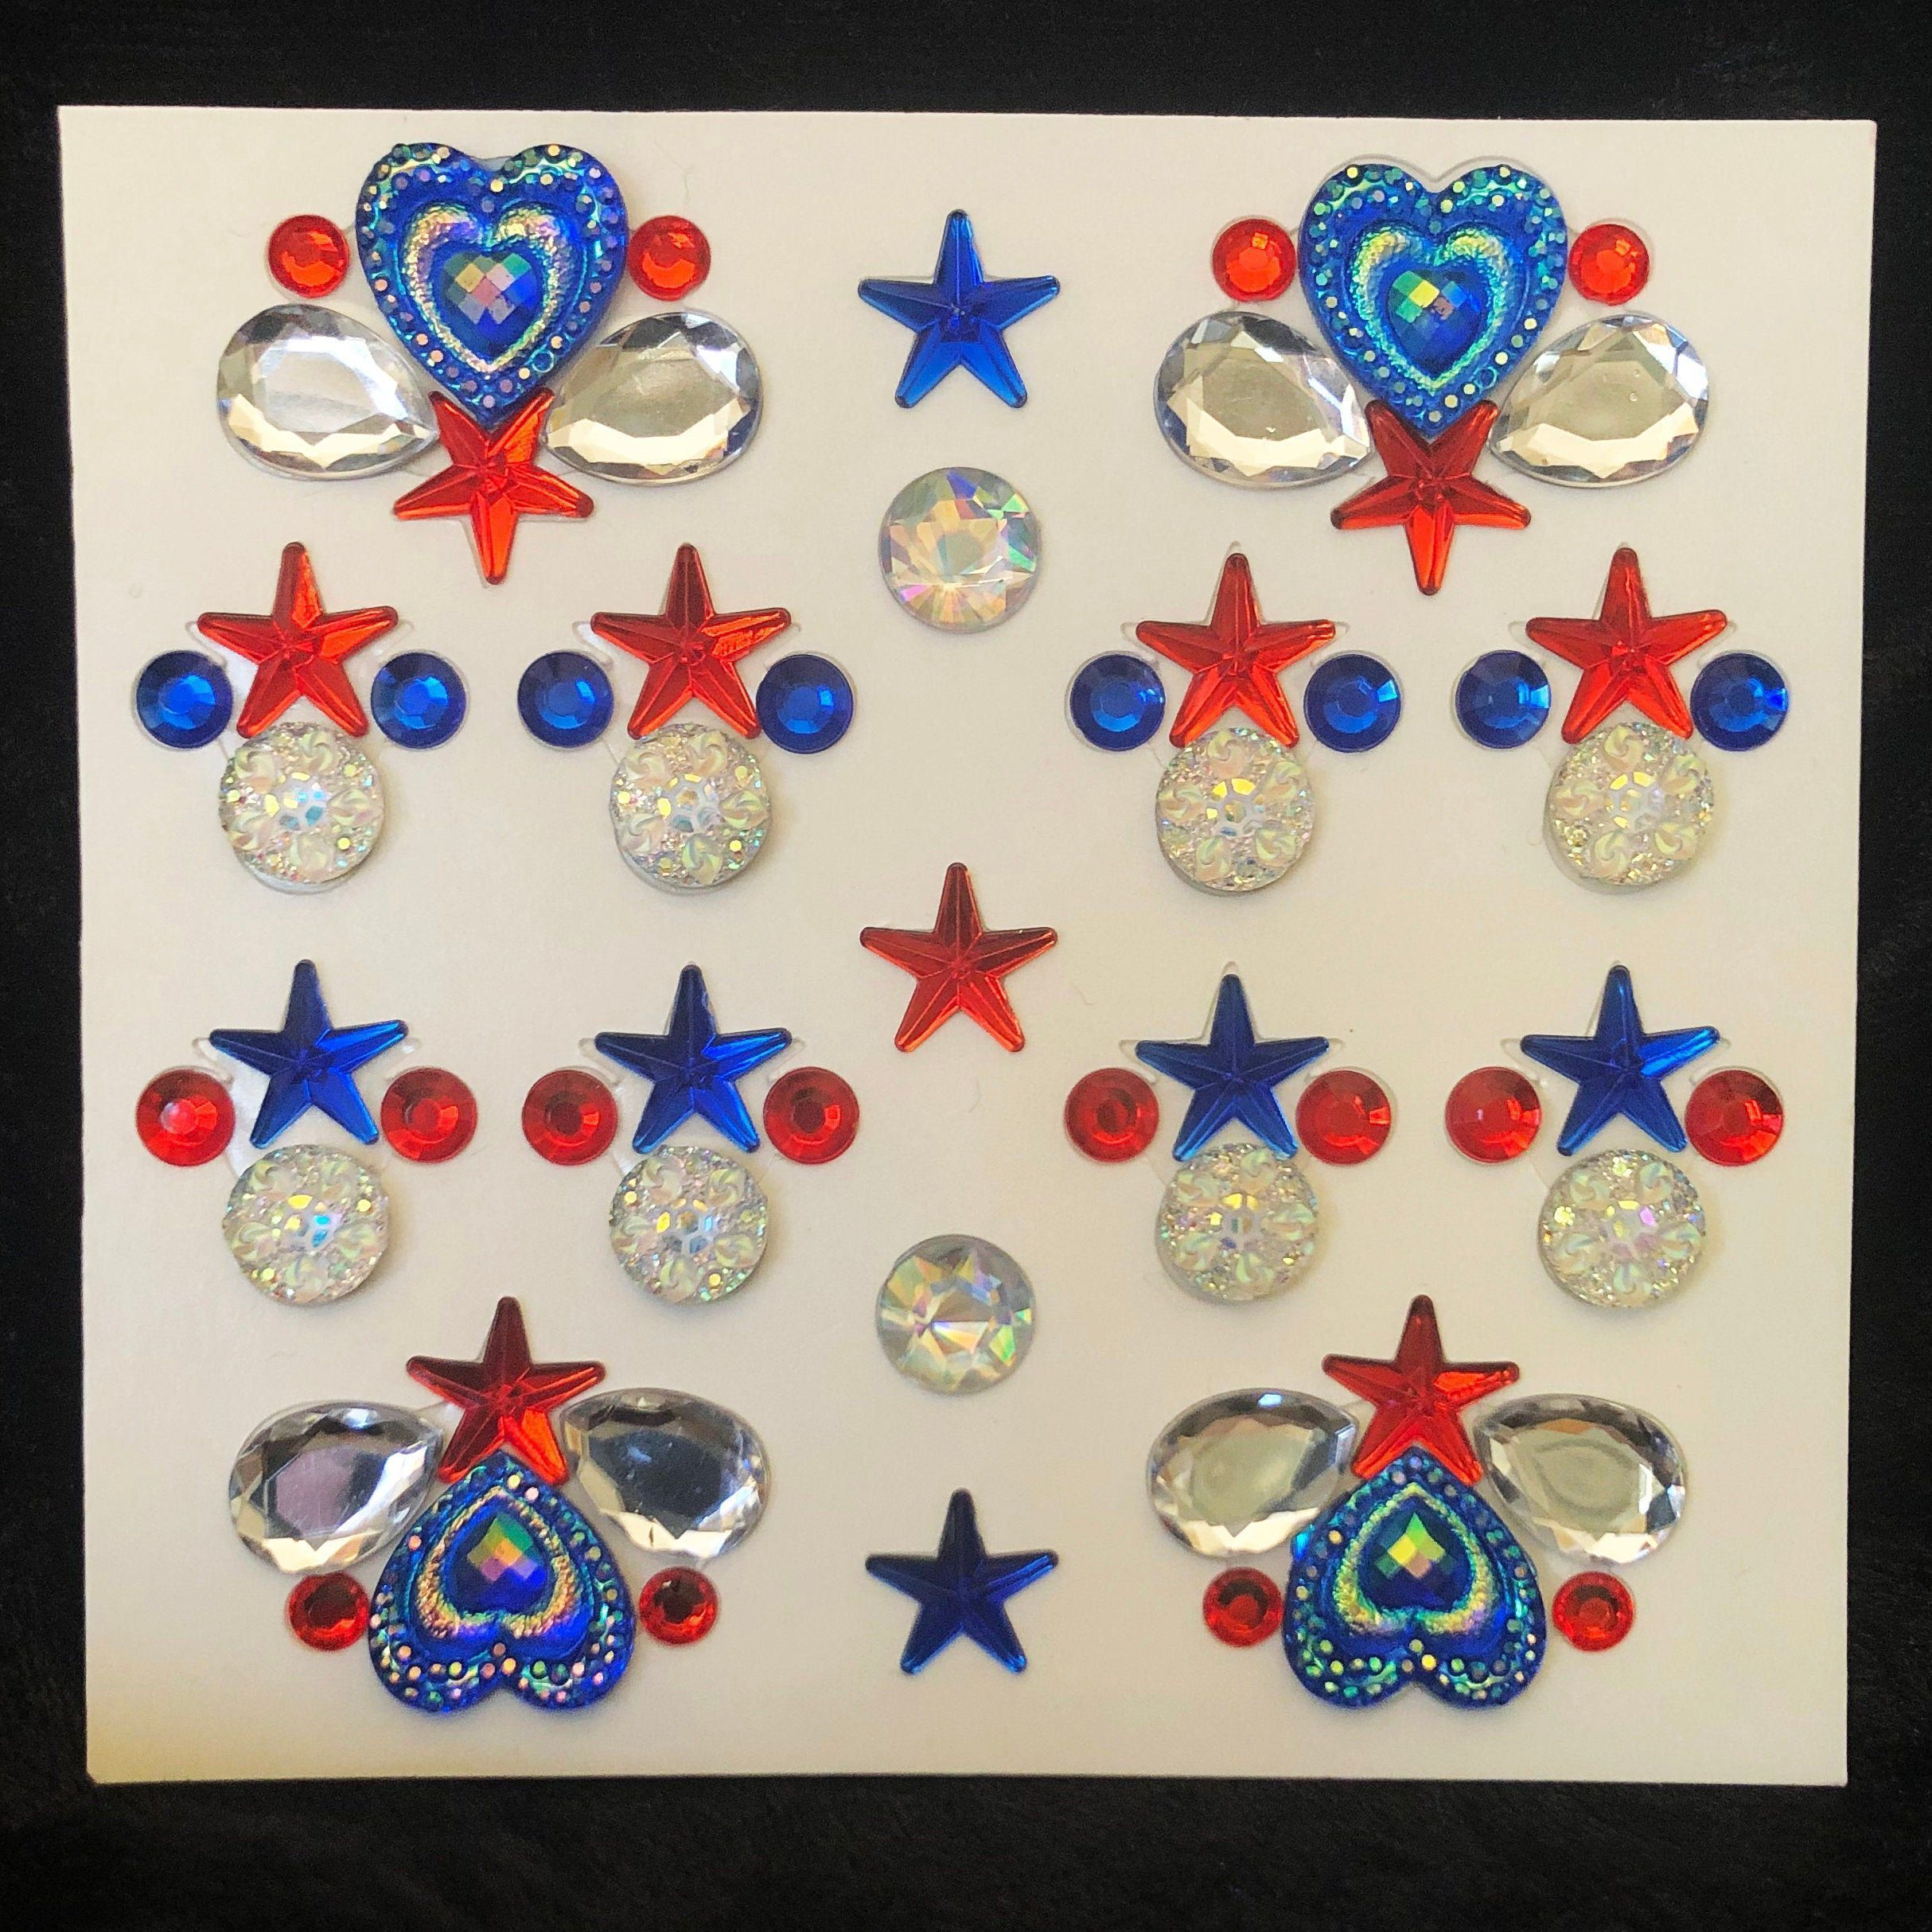 Patriotic July 4th Body & Face Bling Clusters - Red, White and Blue #howtoapplybling Face and Body Bling custom made and mounted to double sided adhesive medical tape. Easily remove each rhinestone cluster by simply lifting and peeling then stick to skin. Holds extremely well on skin and is safe to use.  See my video on the home page for instructions on how to peel and apply, it's so easy and fast, you'll be amazed.  Includes 12 gem clusters - 4 large star and heart clusters, 8 smaller star and #howtoapplybling